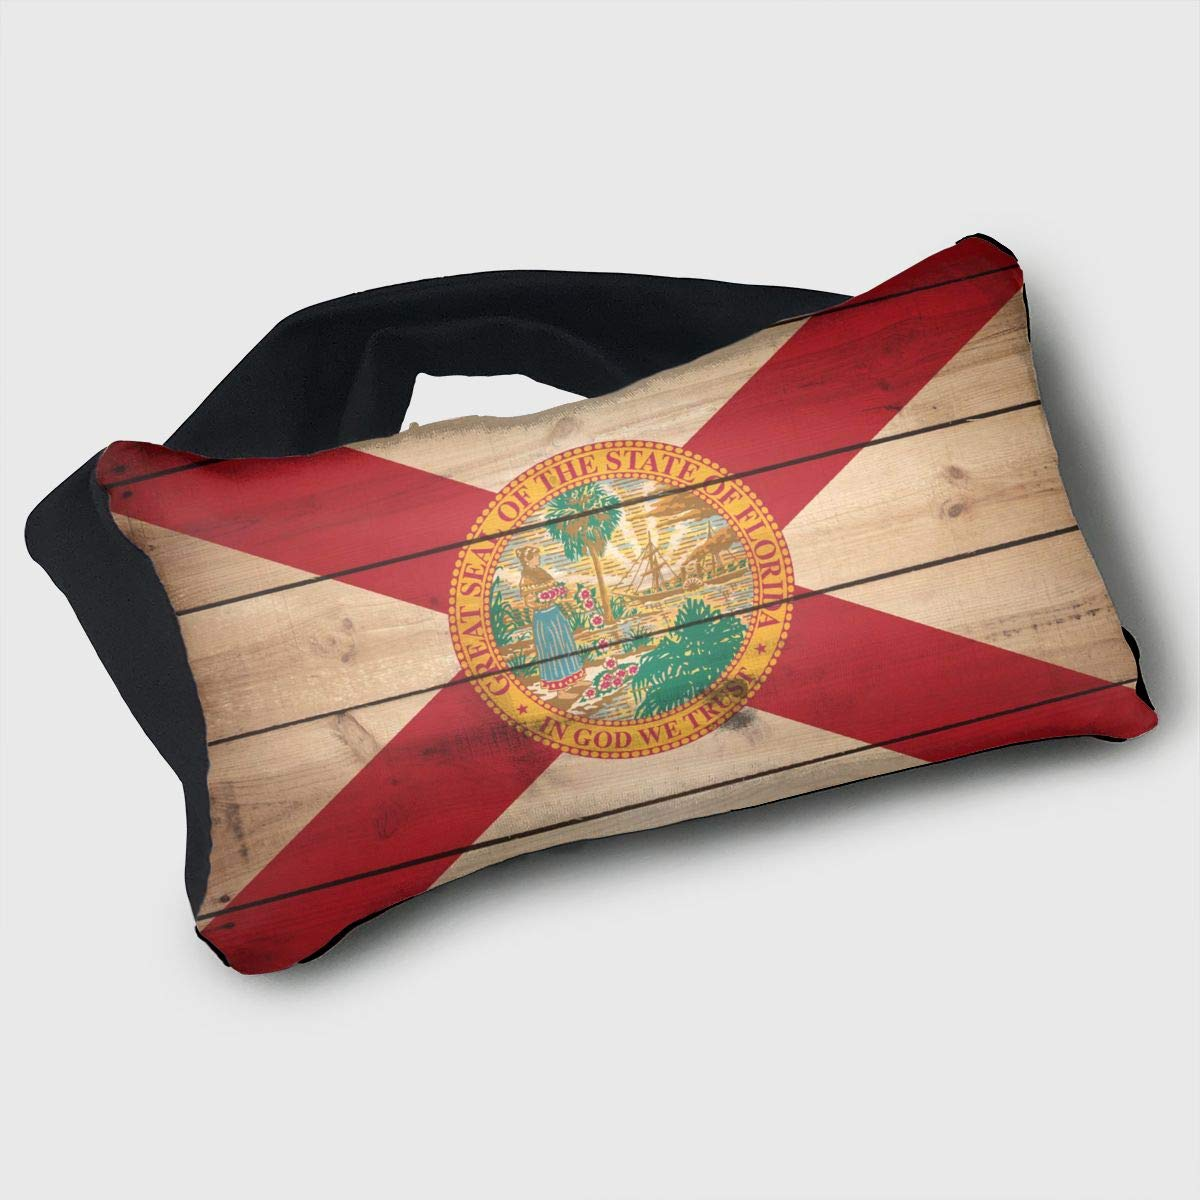 GLing-LIFE Florida State Flag Wood Texture Portable Voyage Pillow Travel Pillow and Eye Mask 2 in 1 Neck Head Support for Airplanes, Cars, Office Naps, Camping, Trains by GLing-LIFE (Image #1)